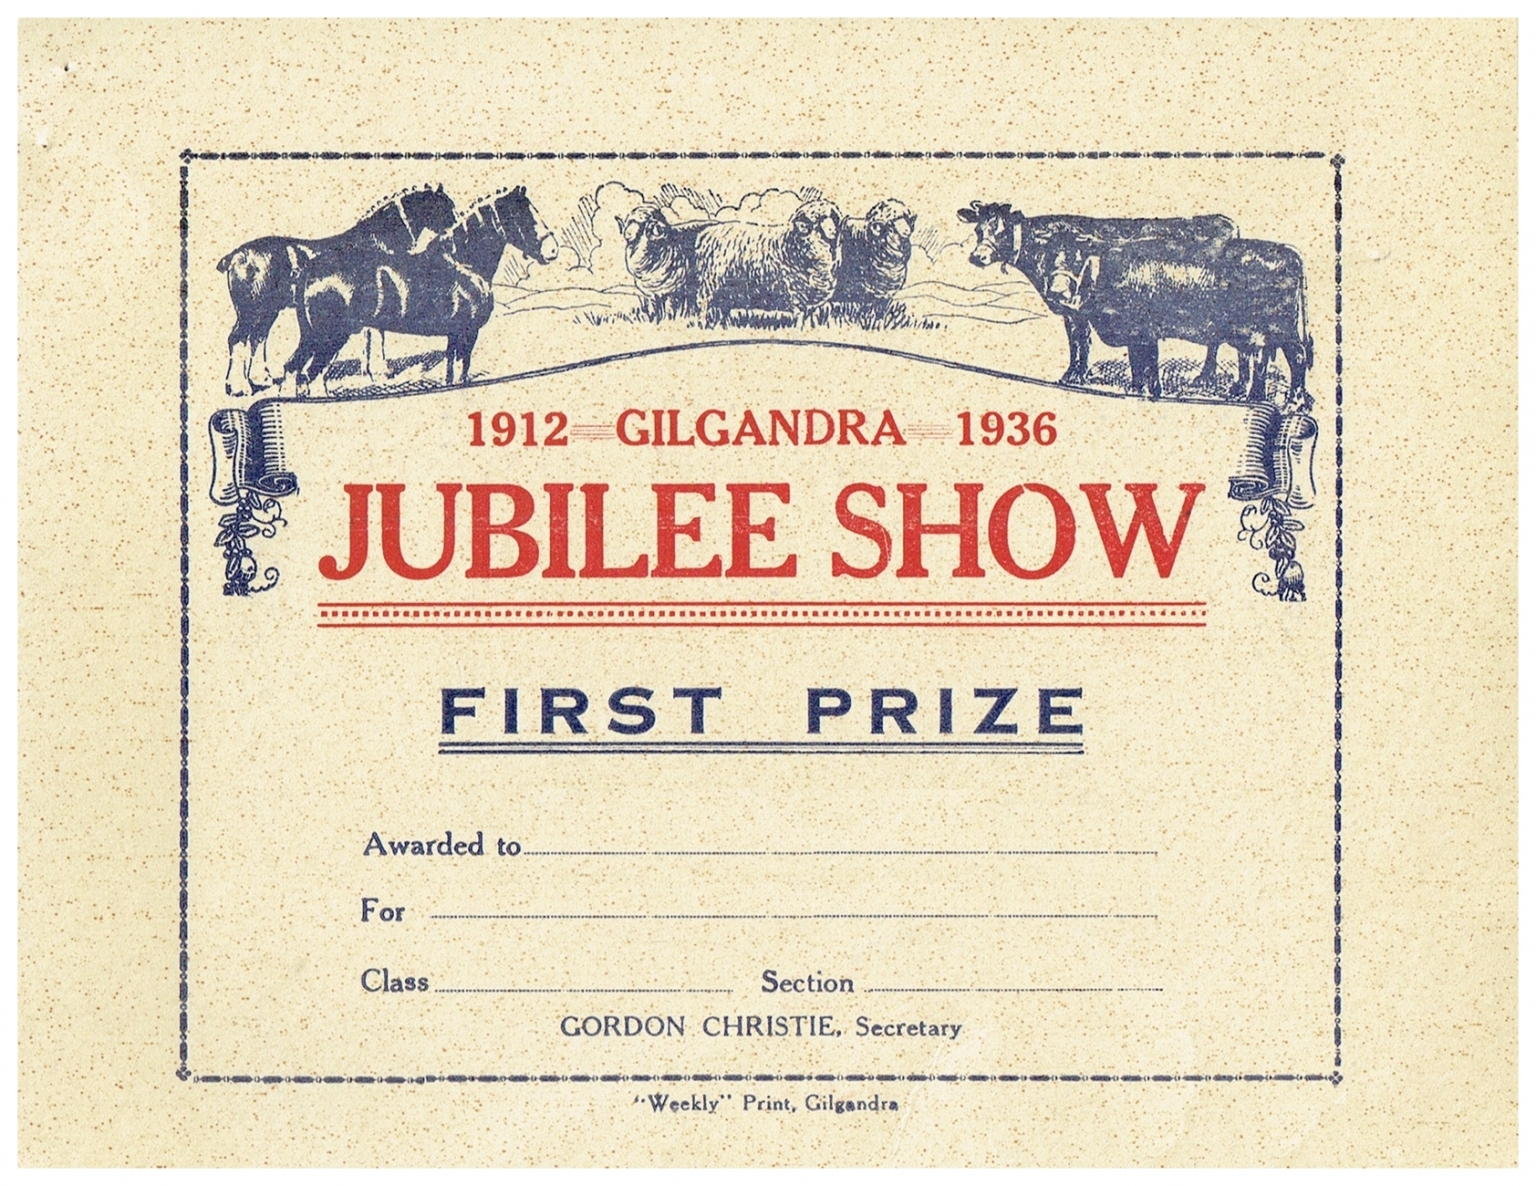 1936 First Prize Card